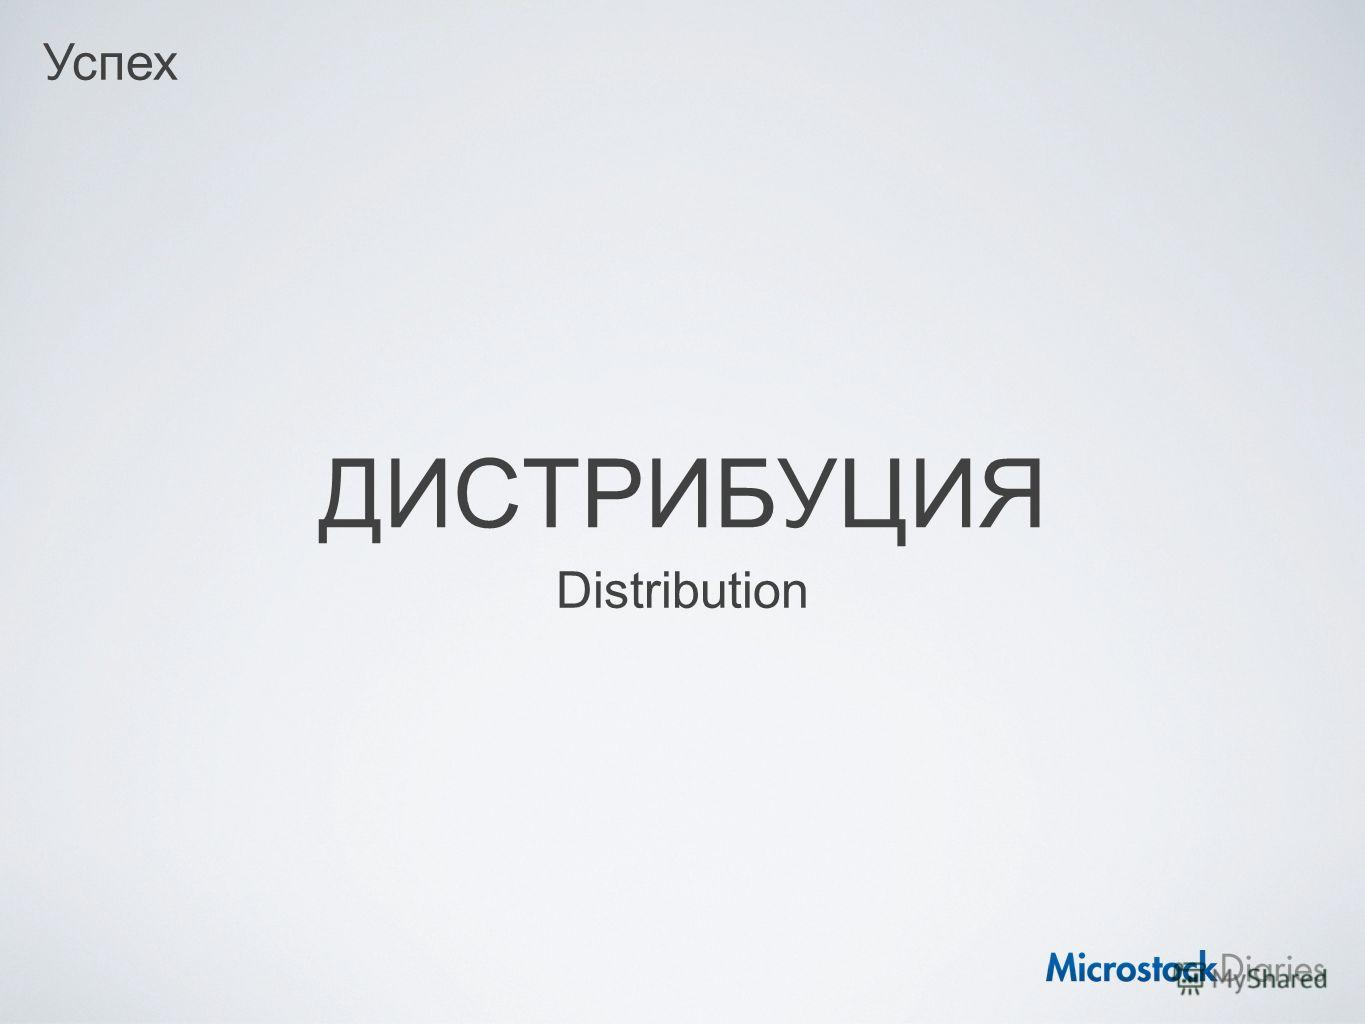 ДИСТРИБУЦИЯ Distribution Успех